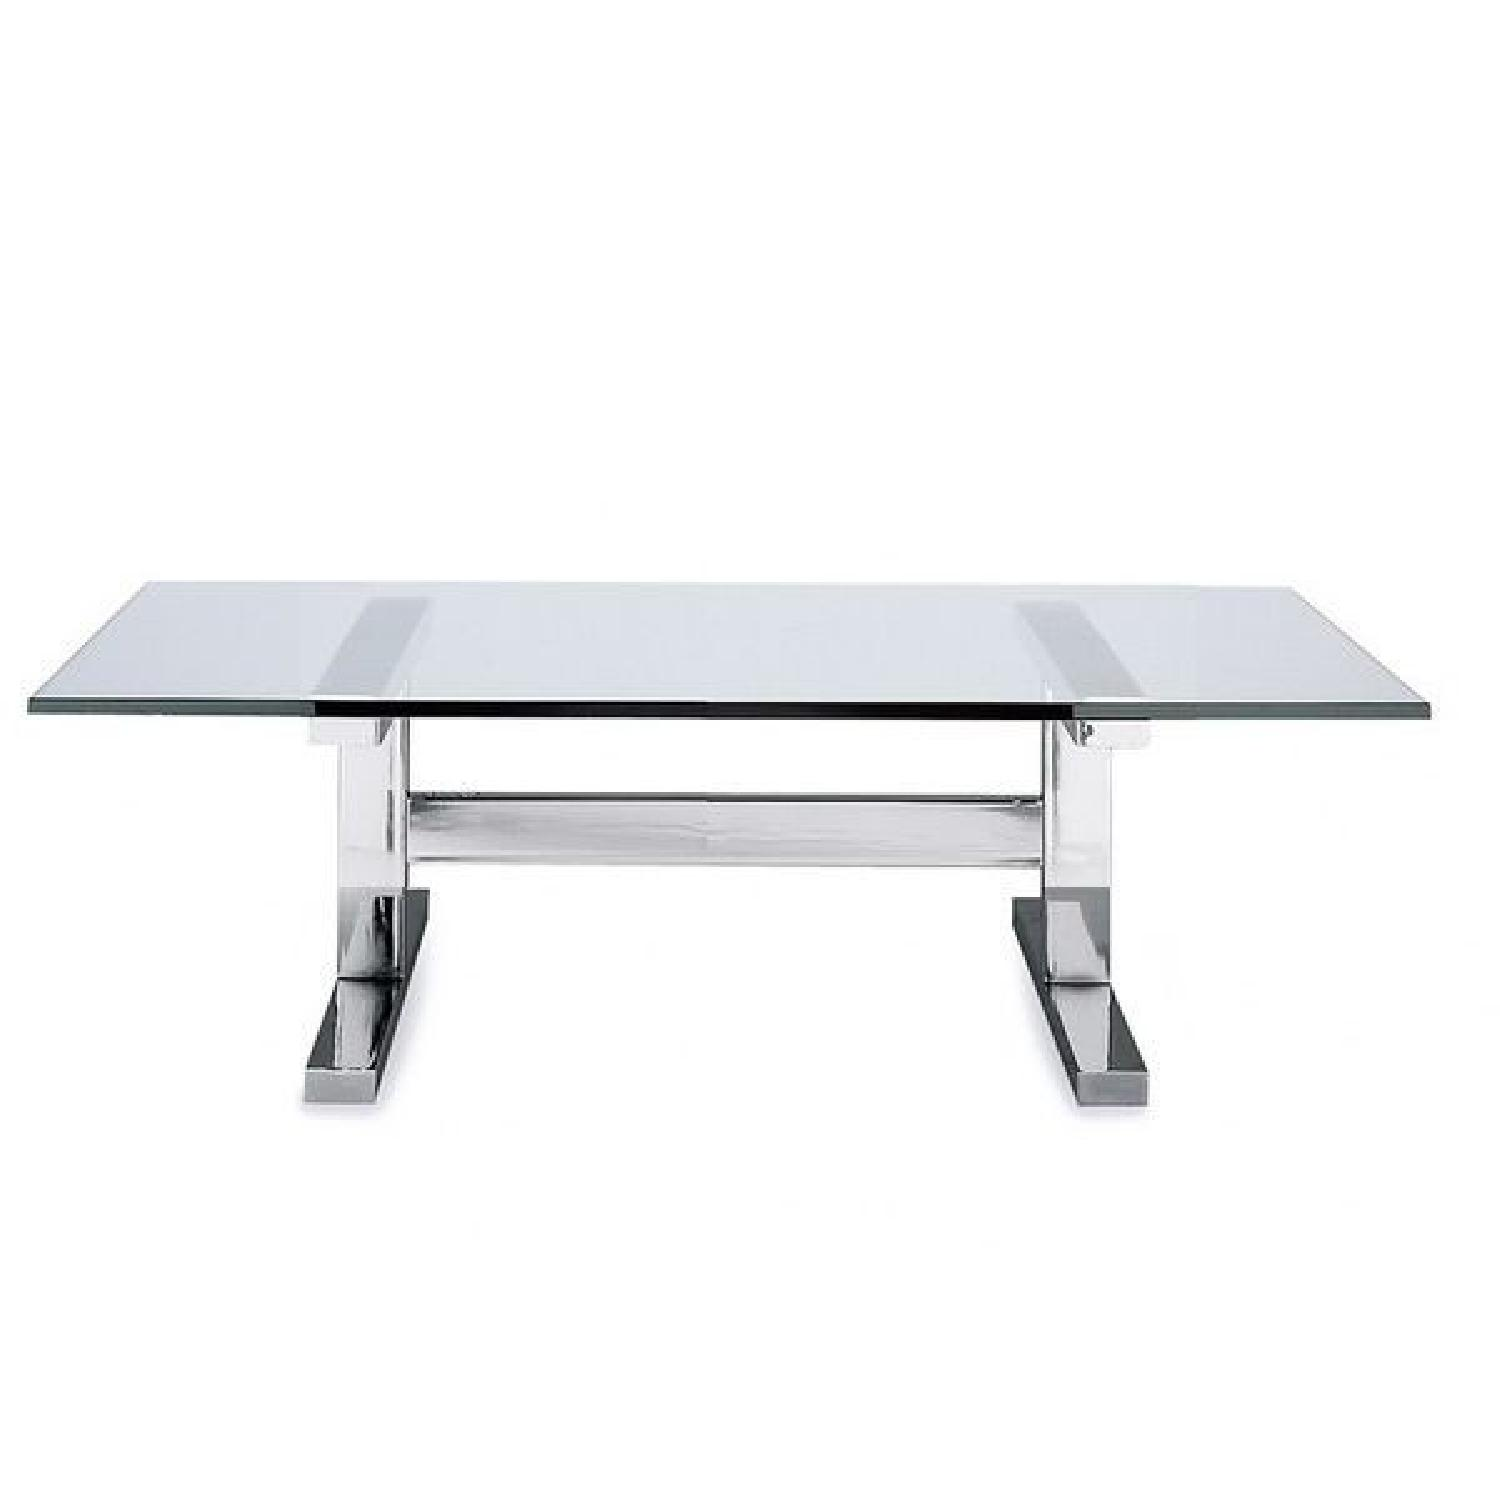 Williams Sonoma Mercer Coffee Table - image-0